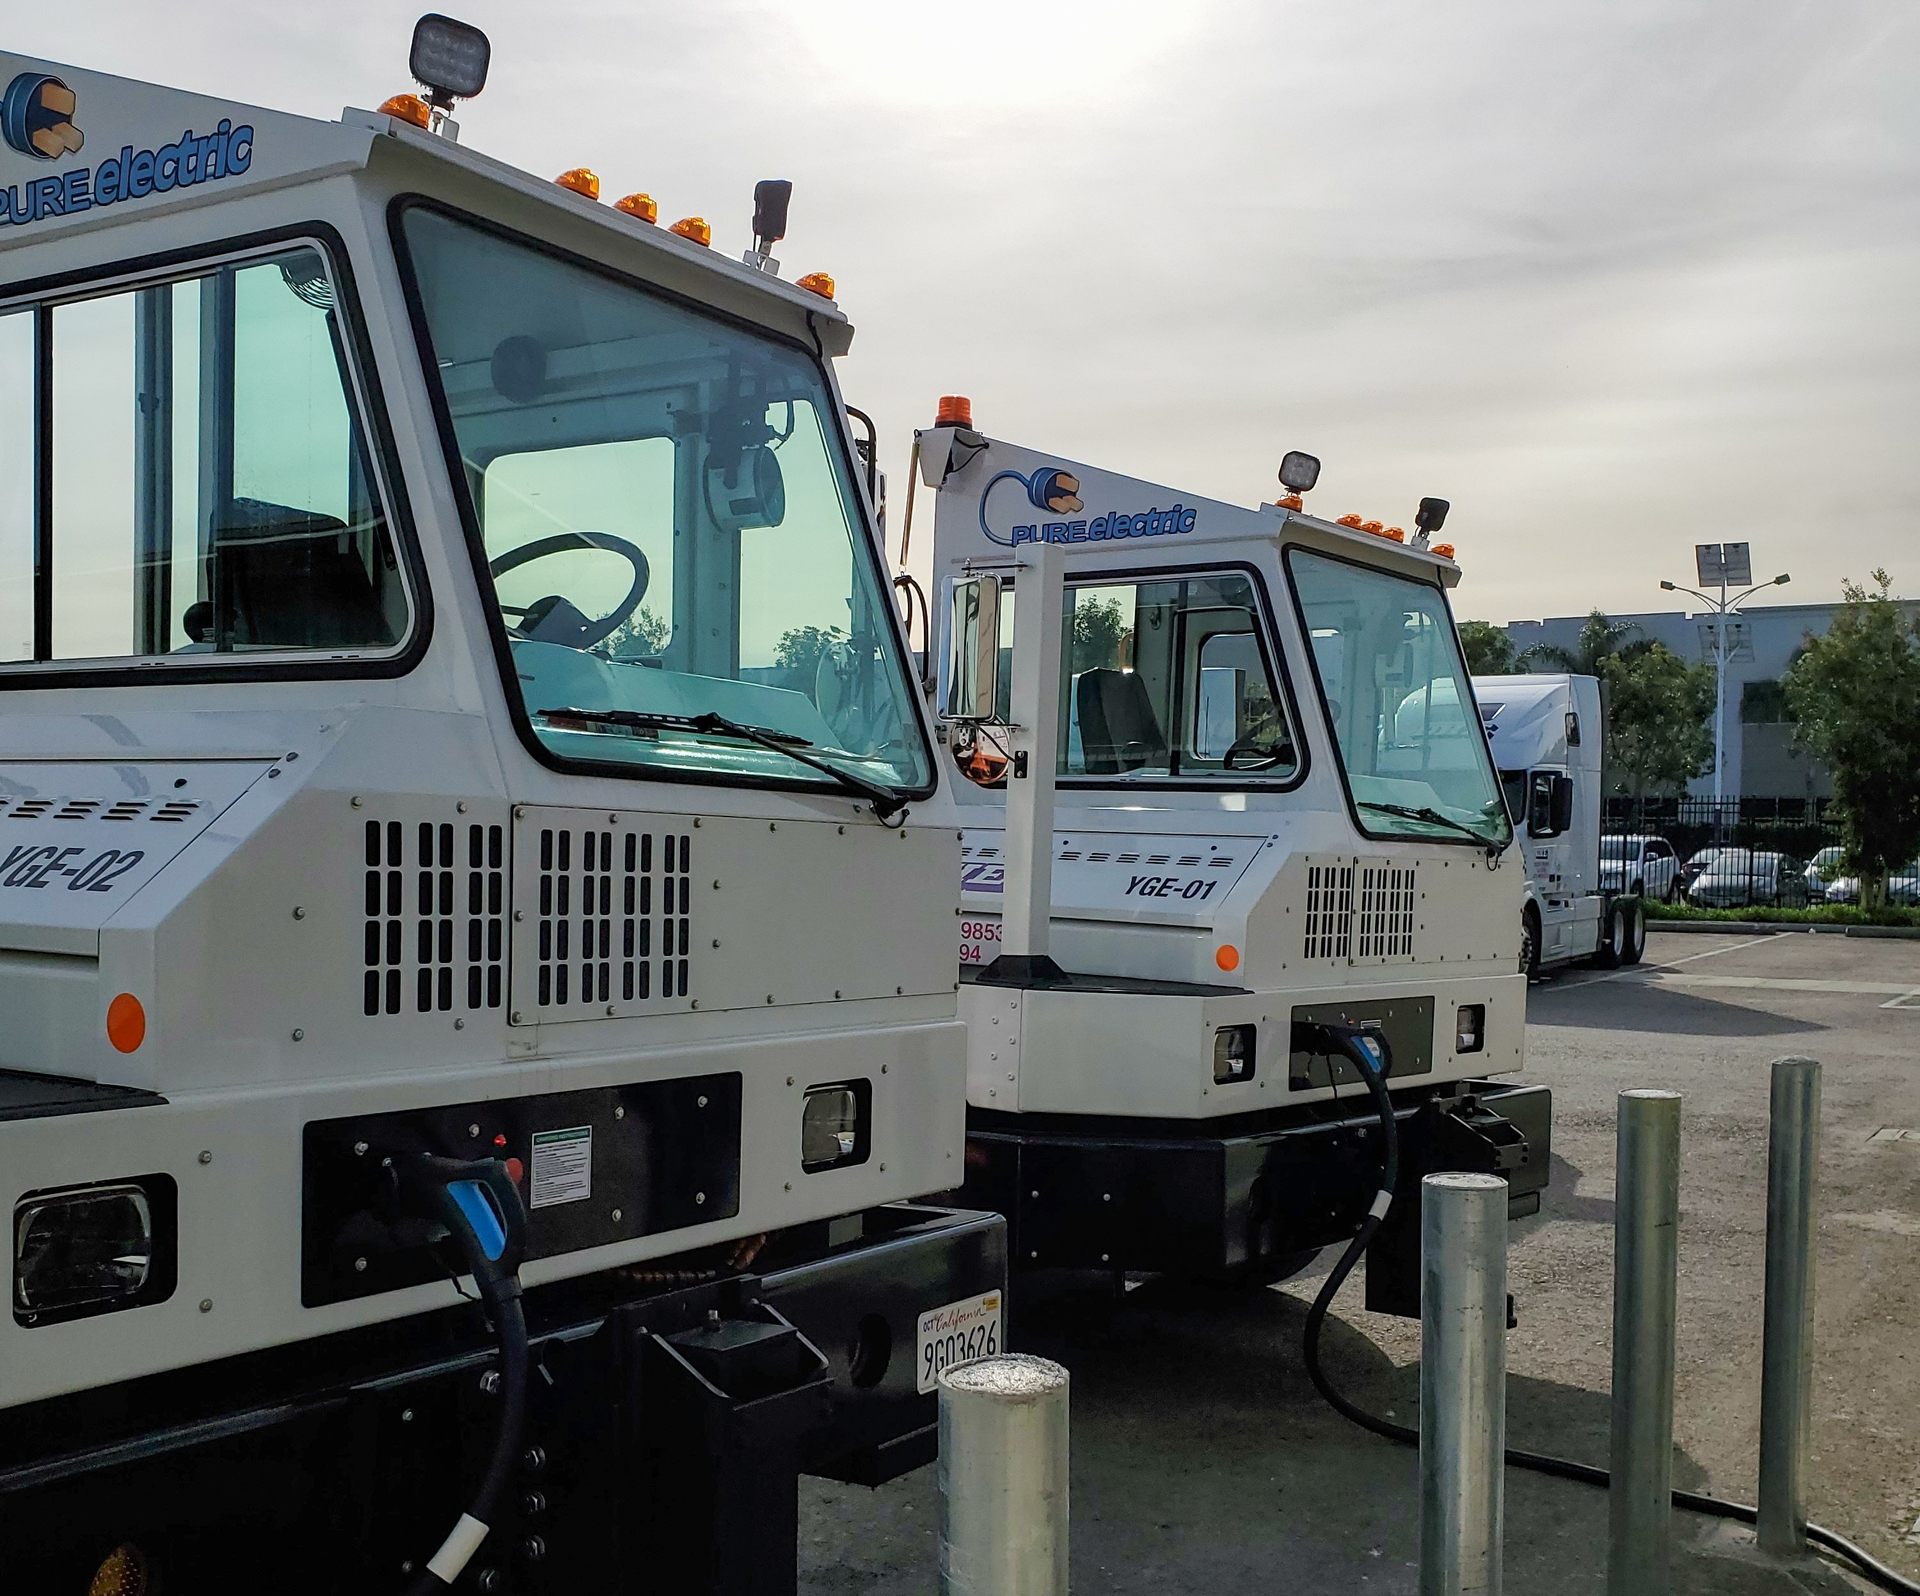 Dependable Highway Express is piloting two Orange EV electric yard trucks at its main terminal in Ontario. The company hopes to deploy more at its 10 other California facilities that stretch from Redding to San Diego.